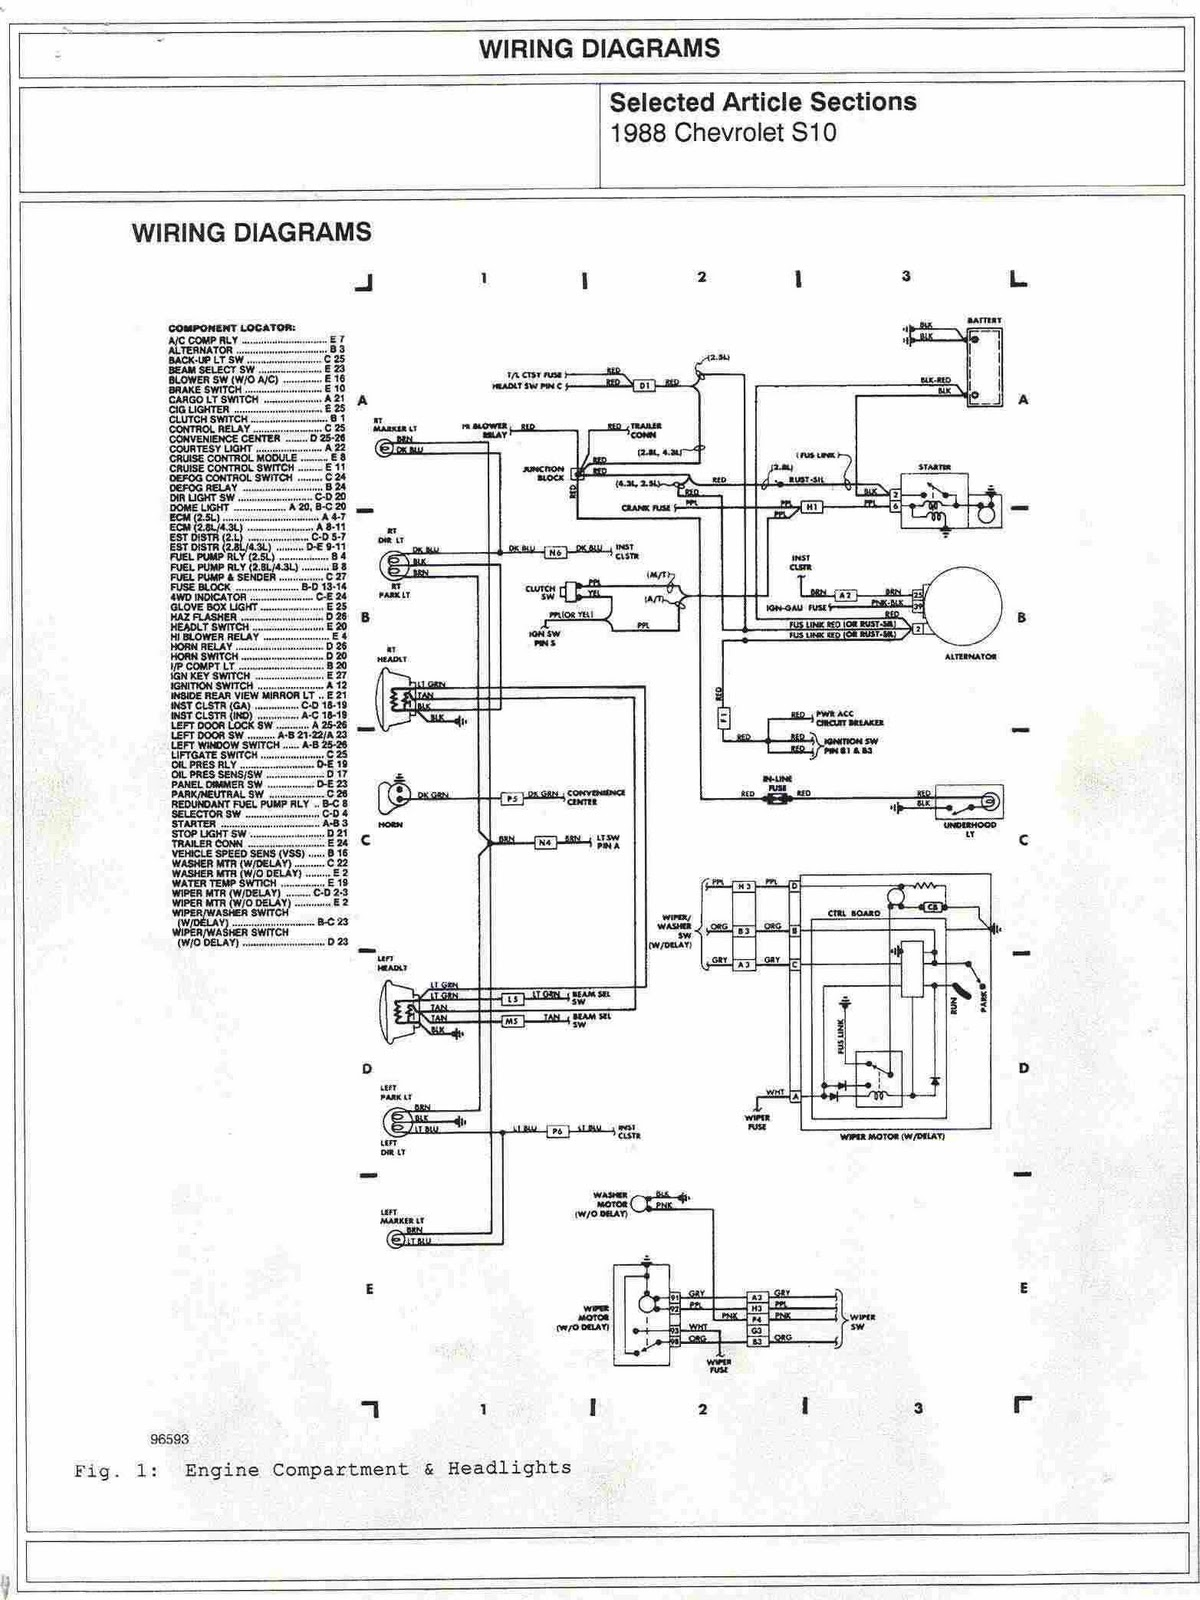 1988 s10 wiring diagram wiring schematic diagram 126 [ 1200 x 1600 Pixel ]